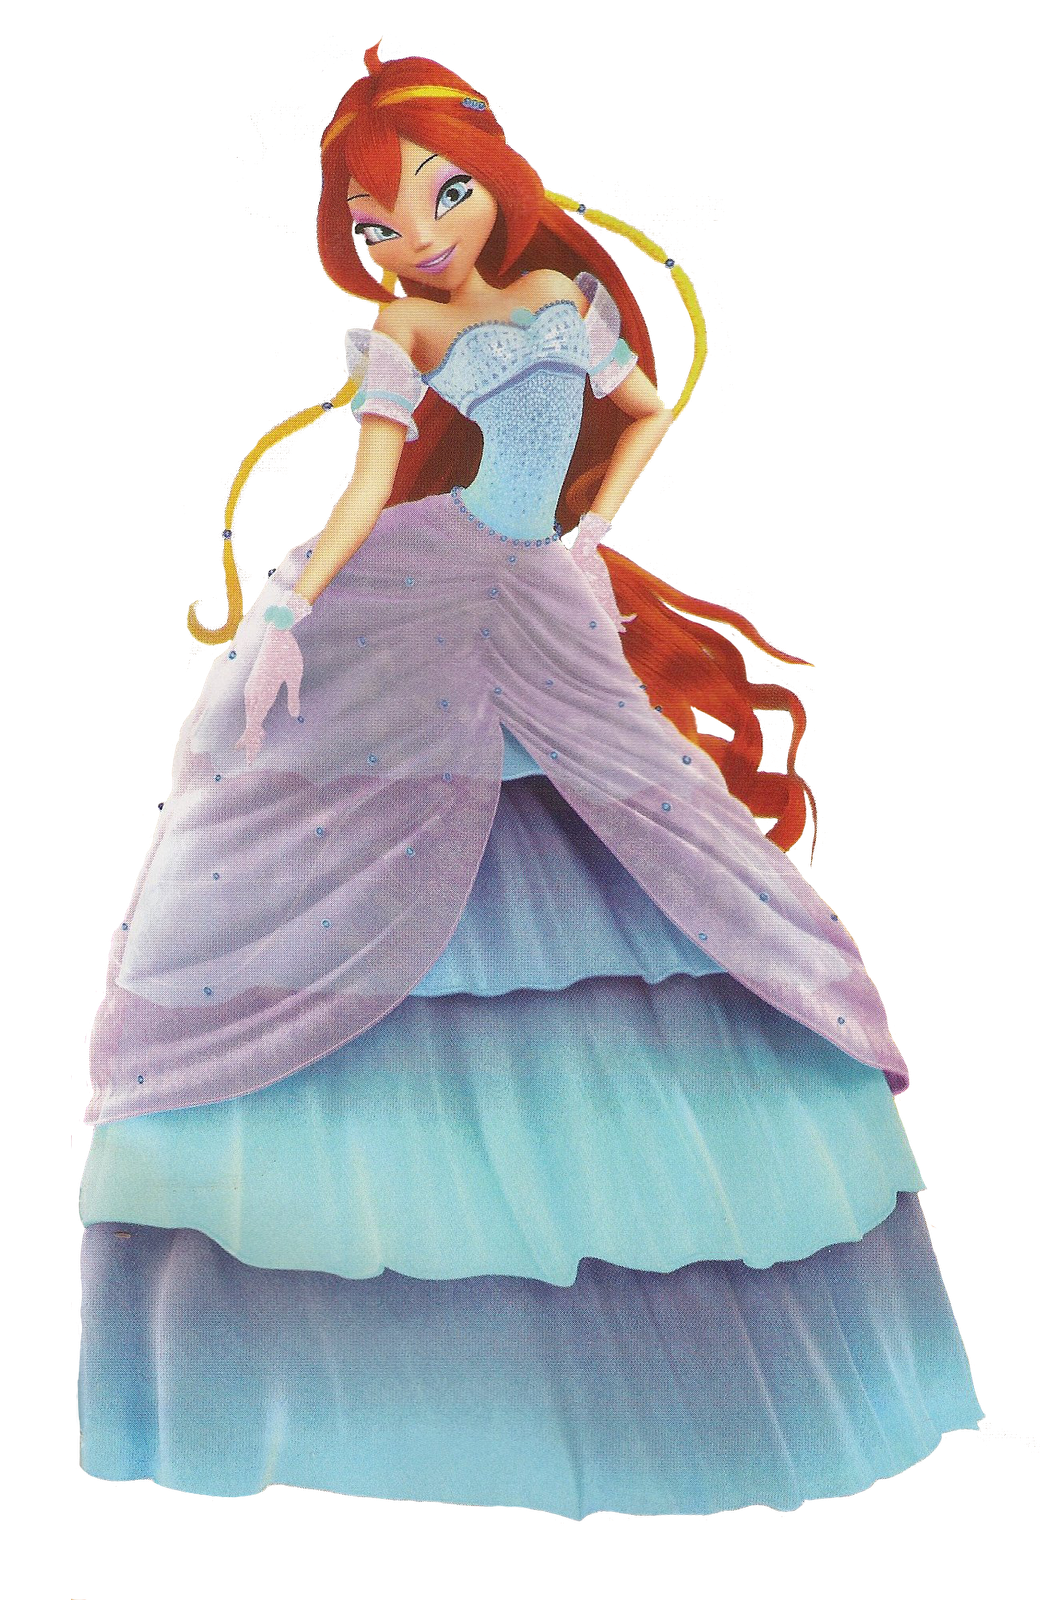 Bloom-the-winx-club-19481219-1040-1600.png